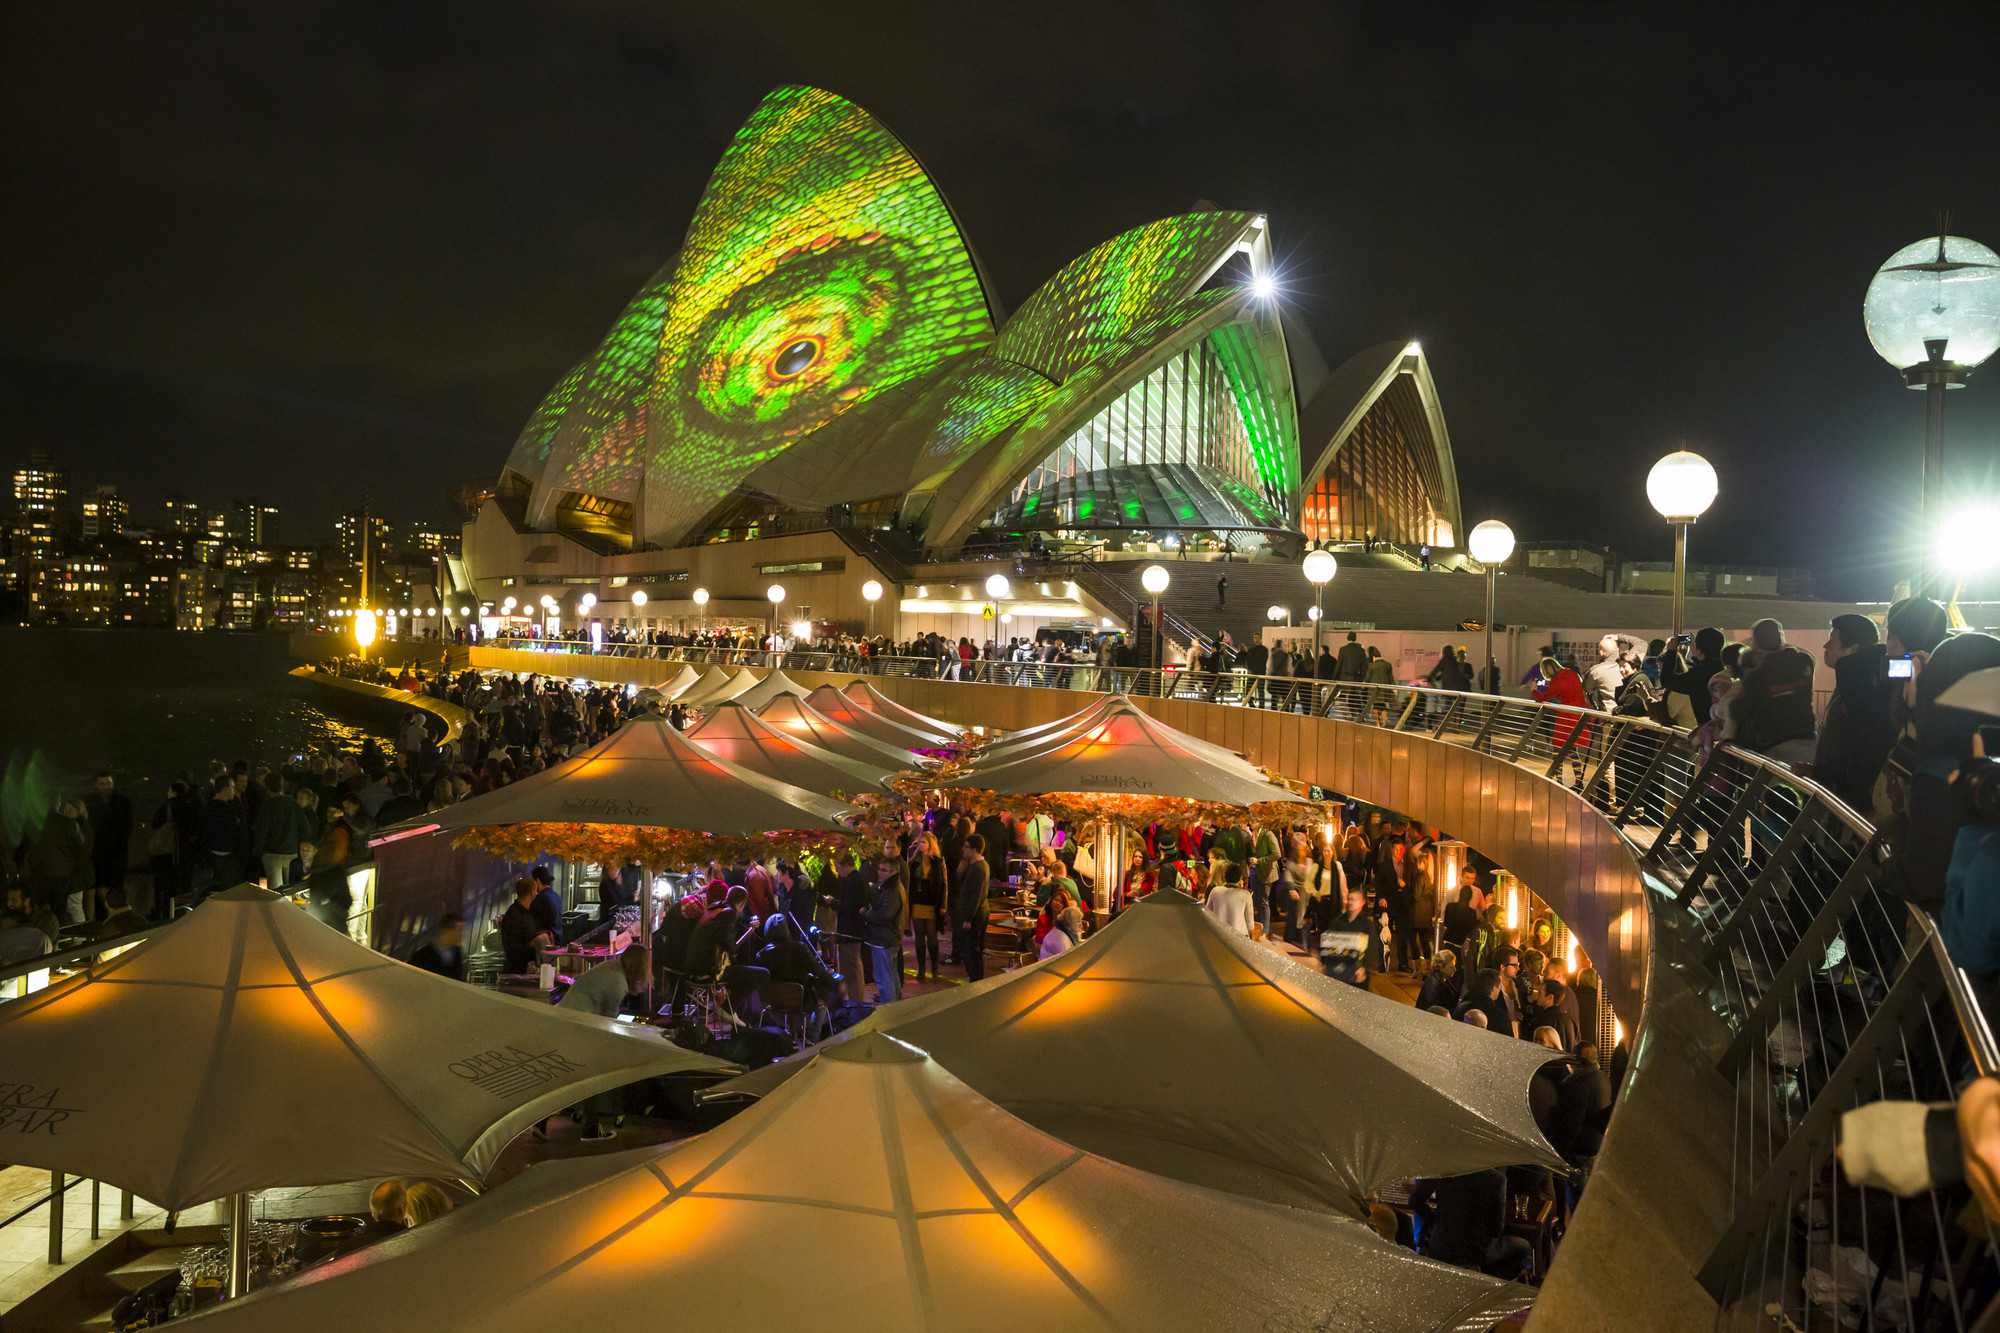 Vivid Sydney lights the Opera House. Image Courtesy of Vivid Sydney